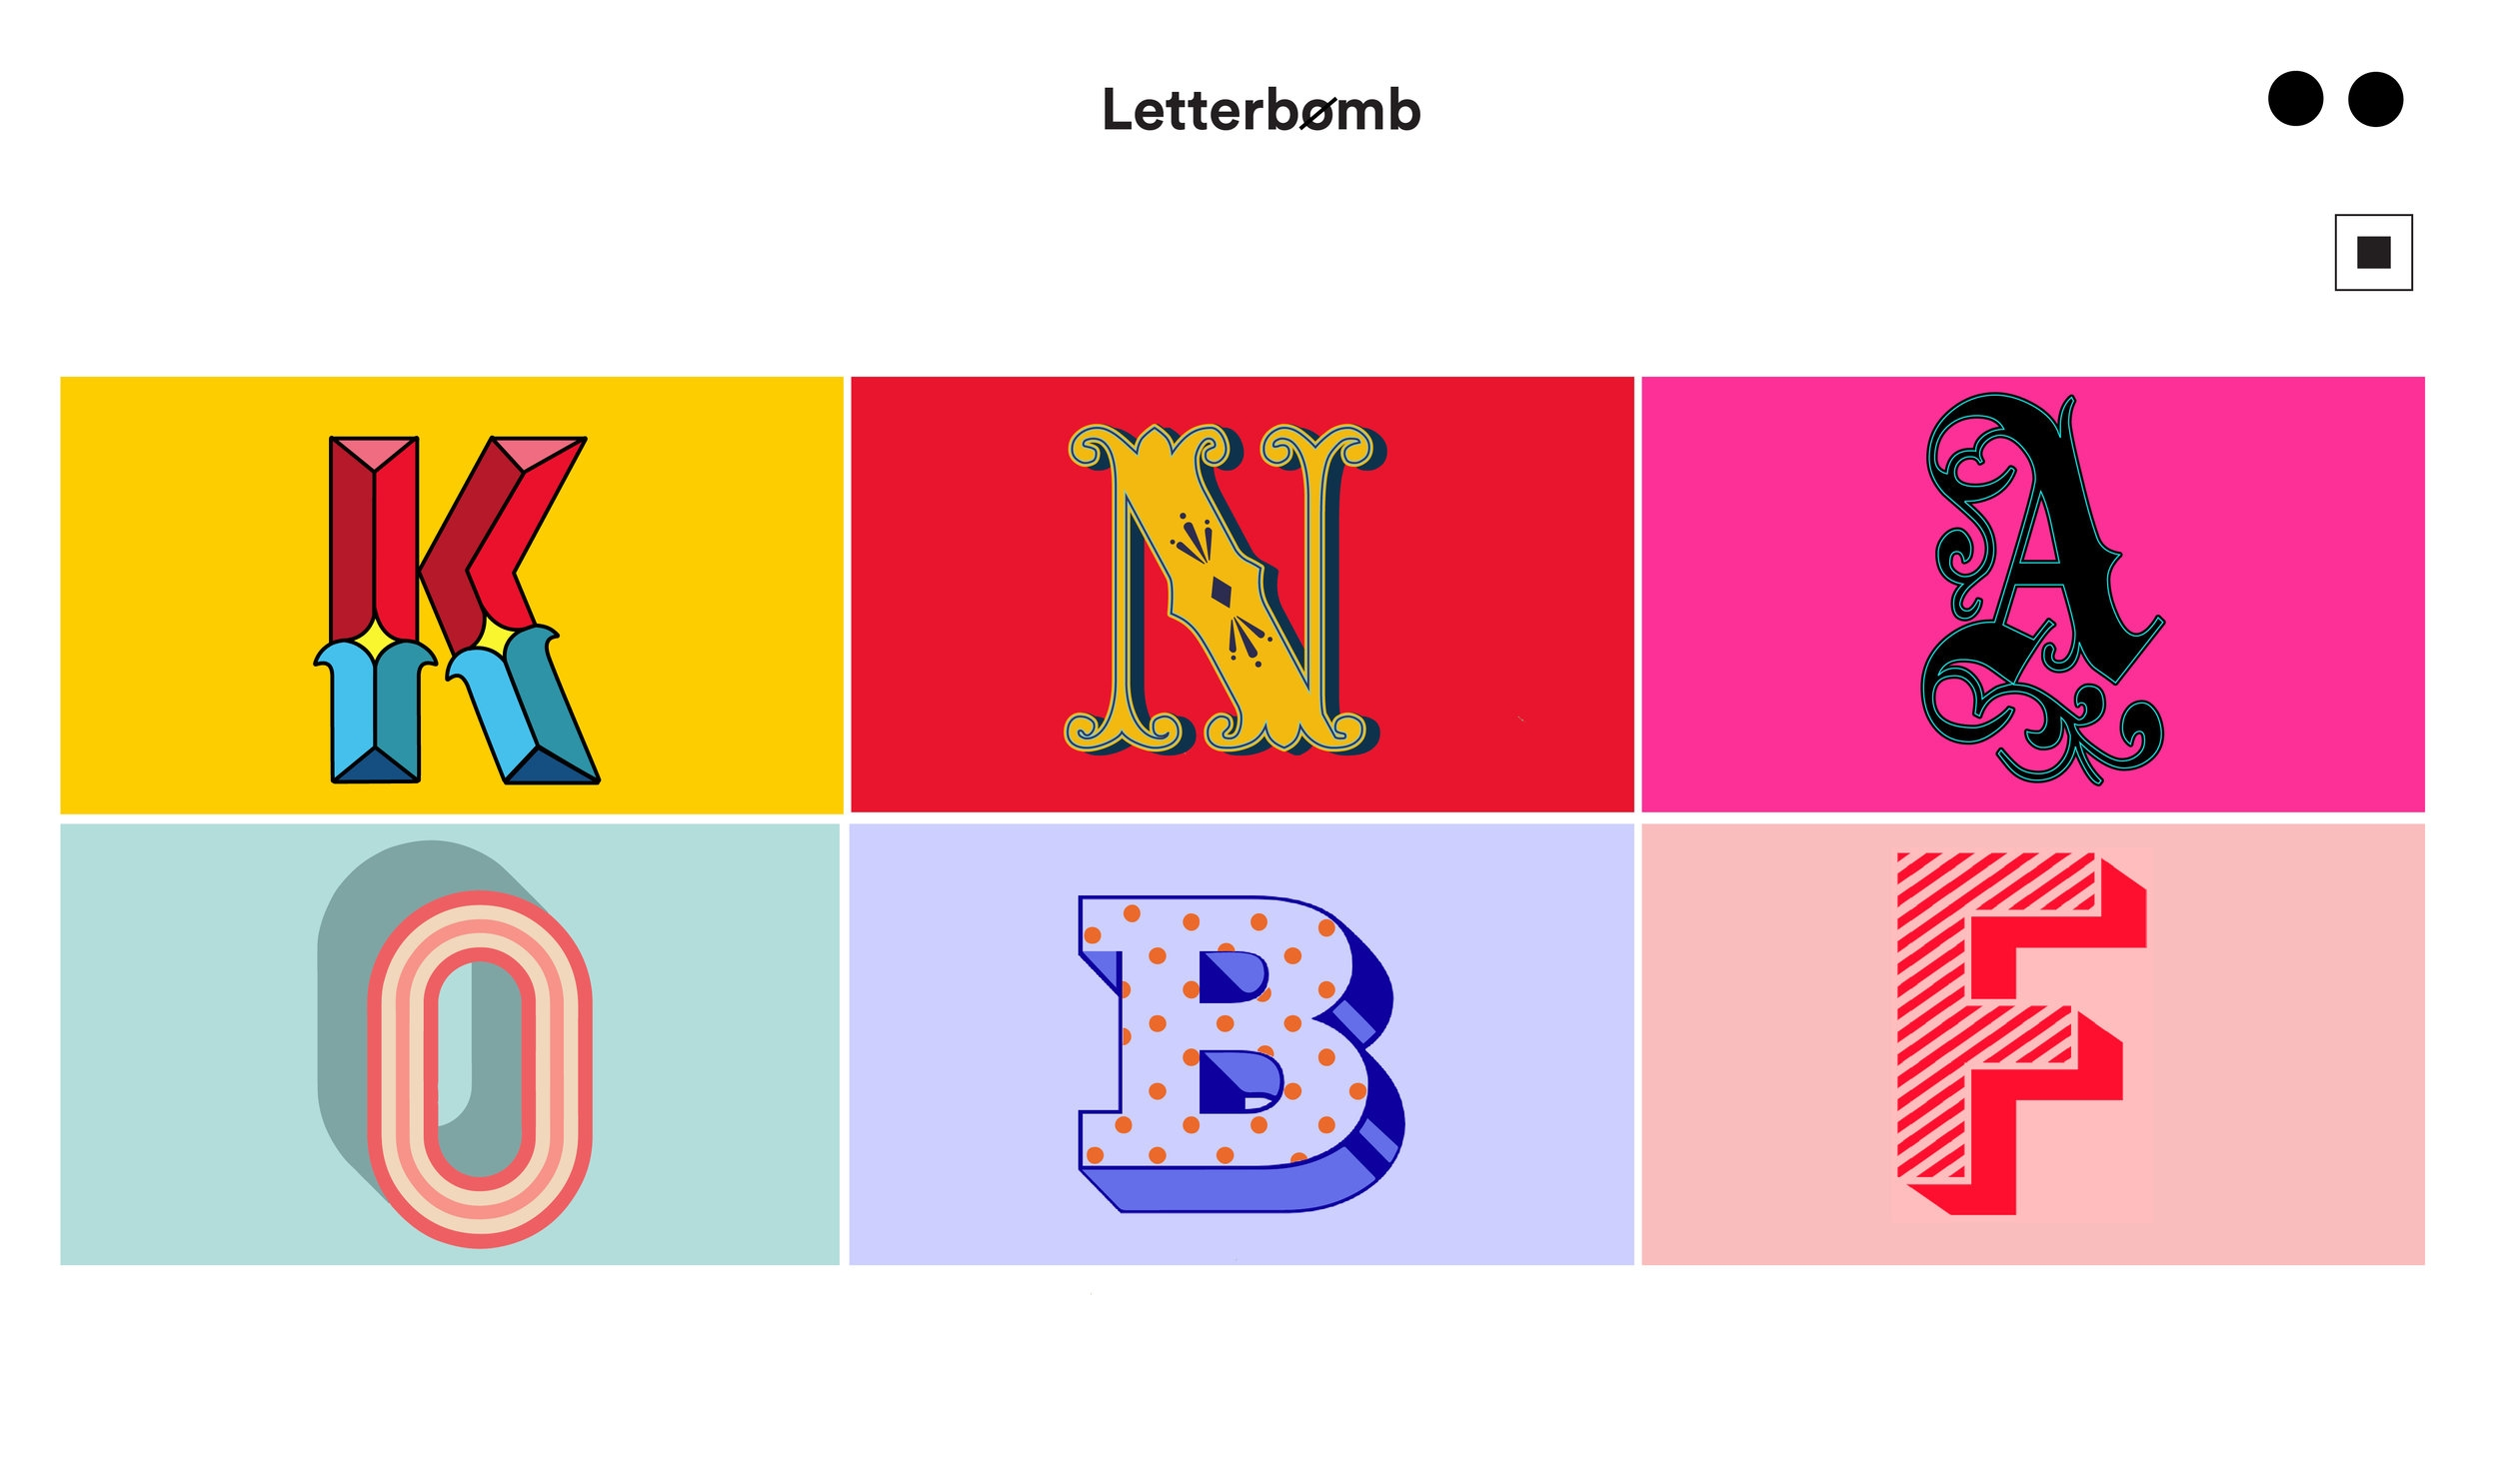 Letterbomb_webpages-02.jpg